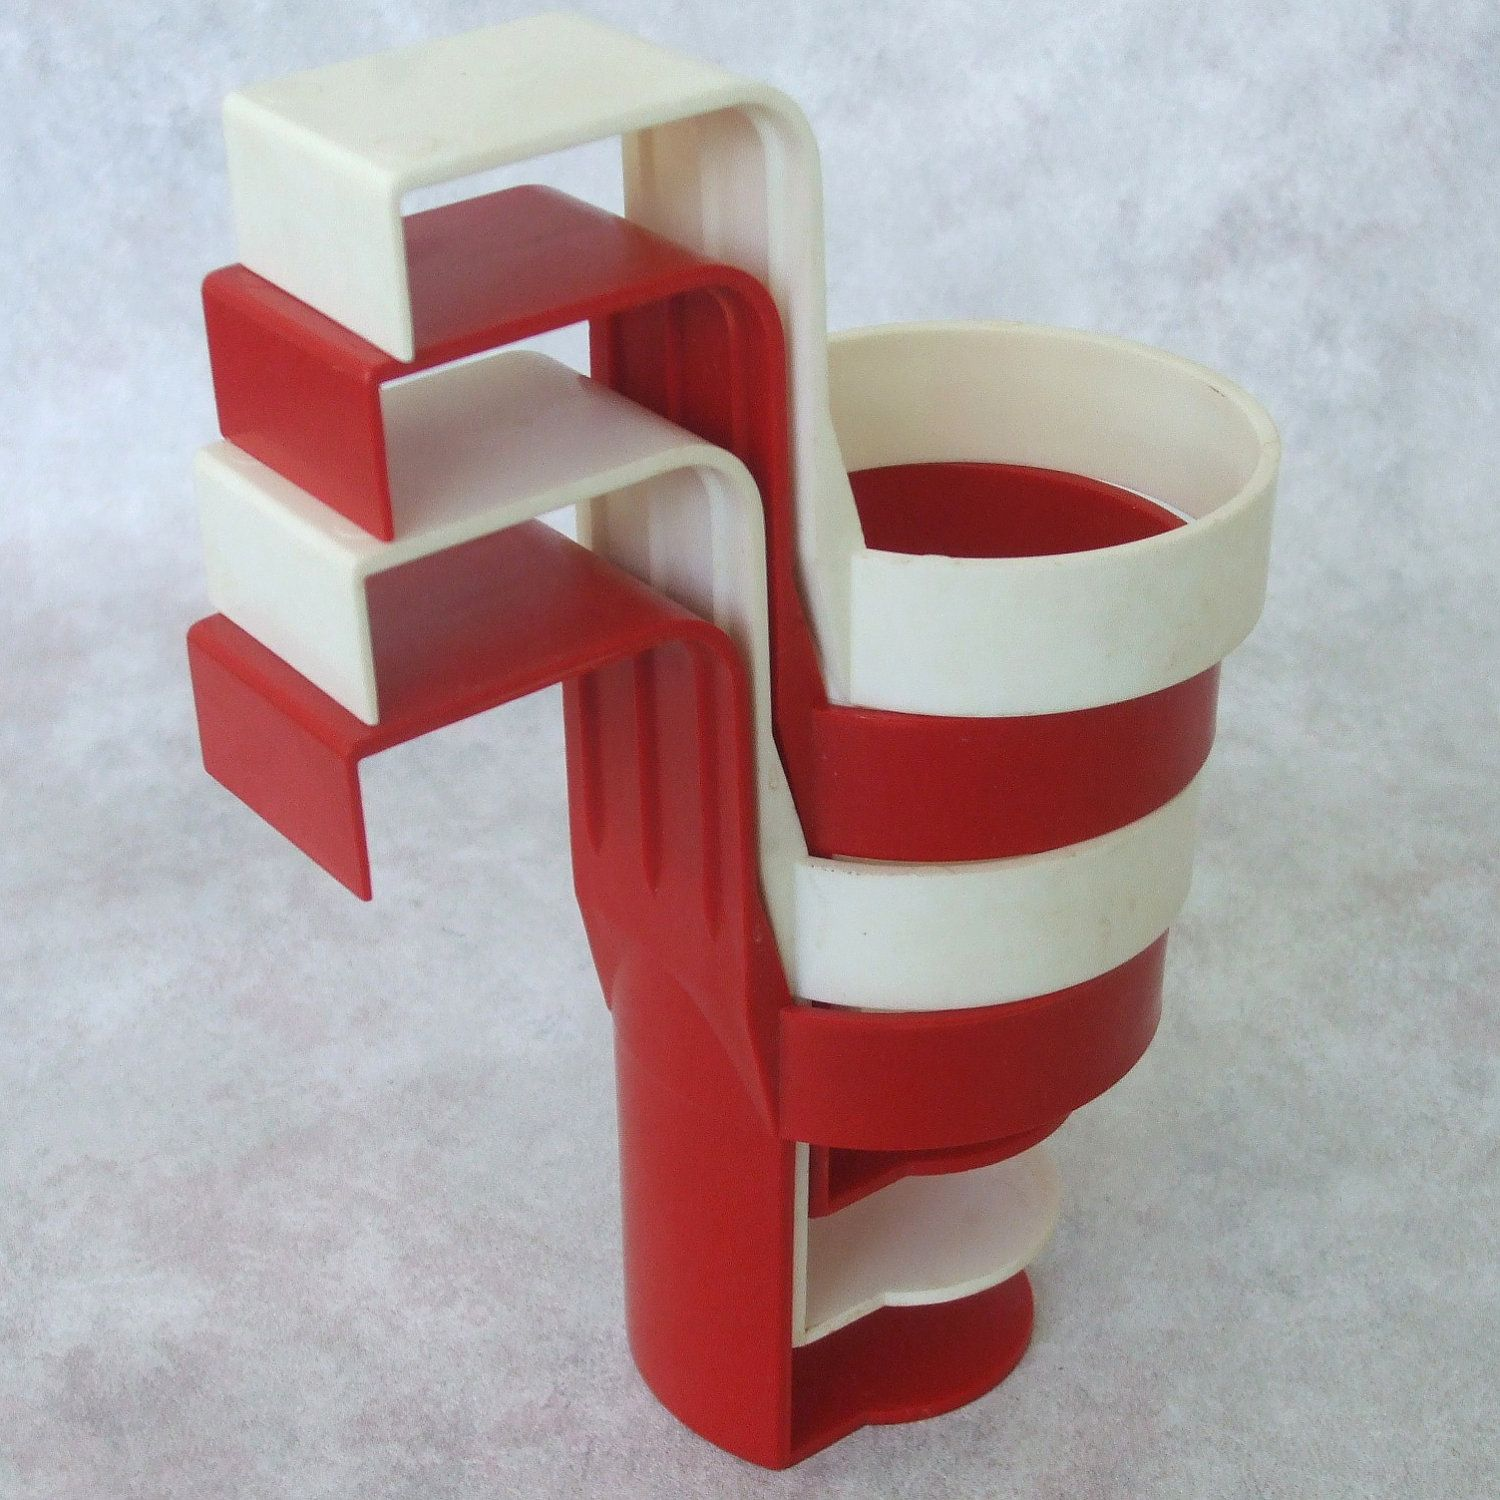 Ah - the ORIGINAL car cup holders that hung from the ... - photo#29